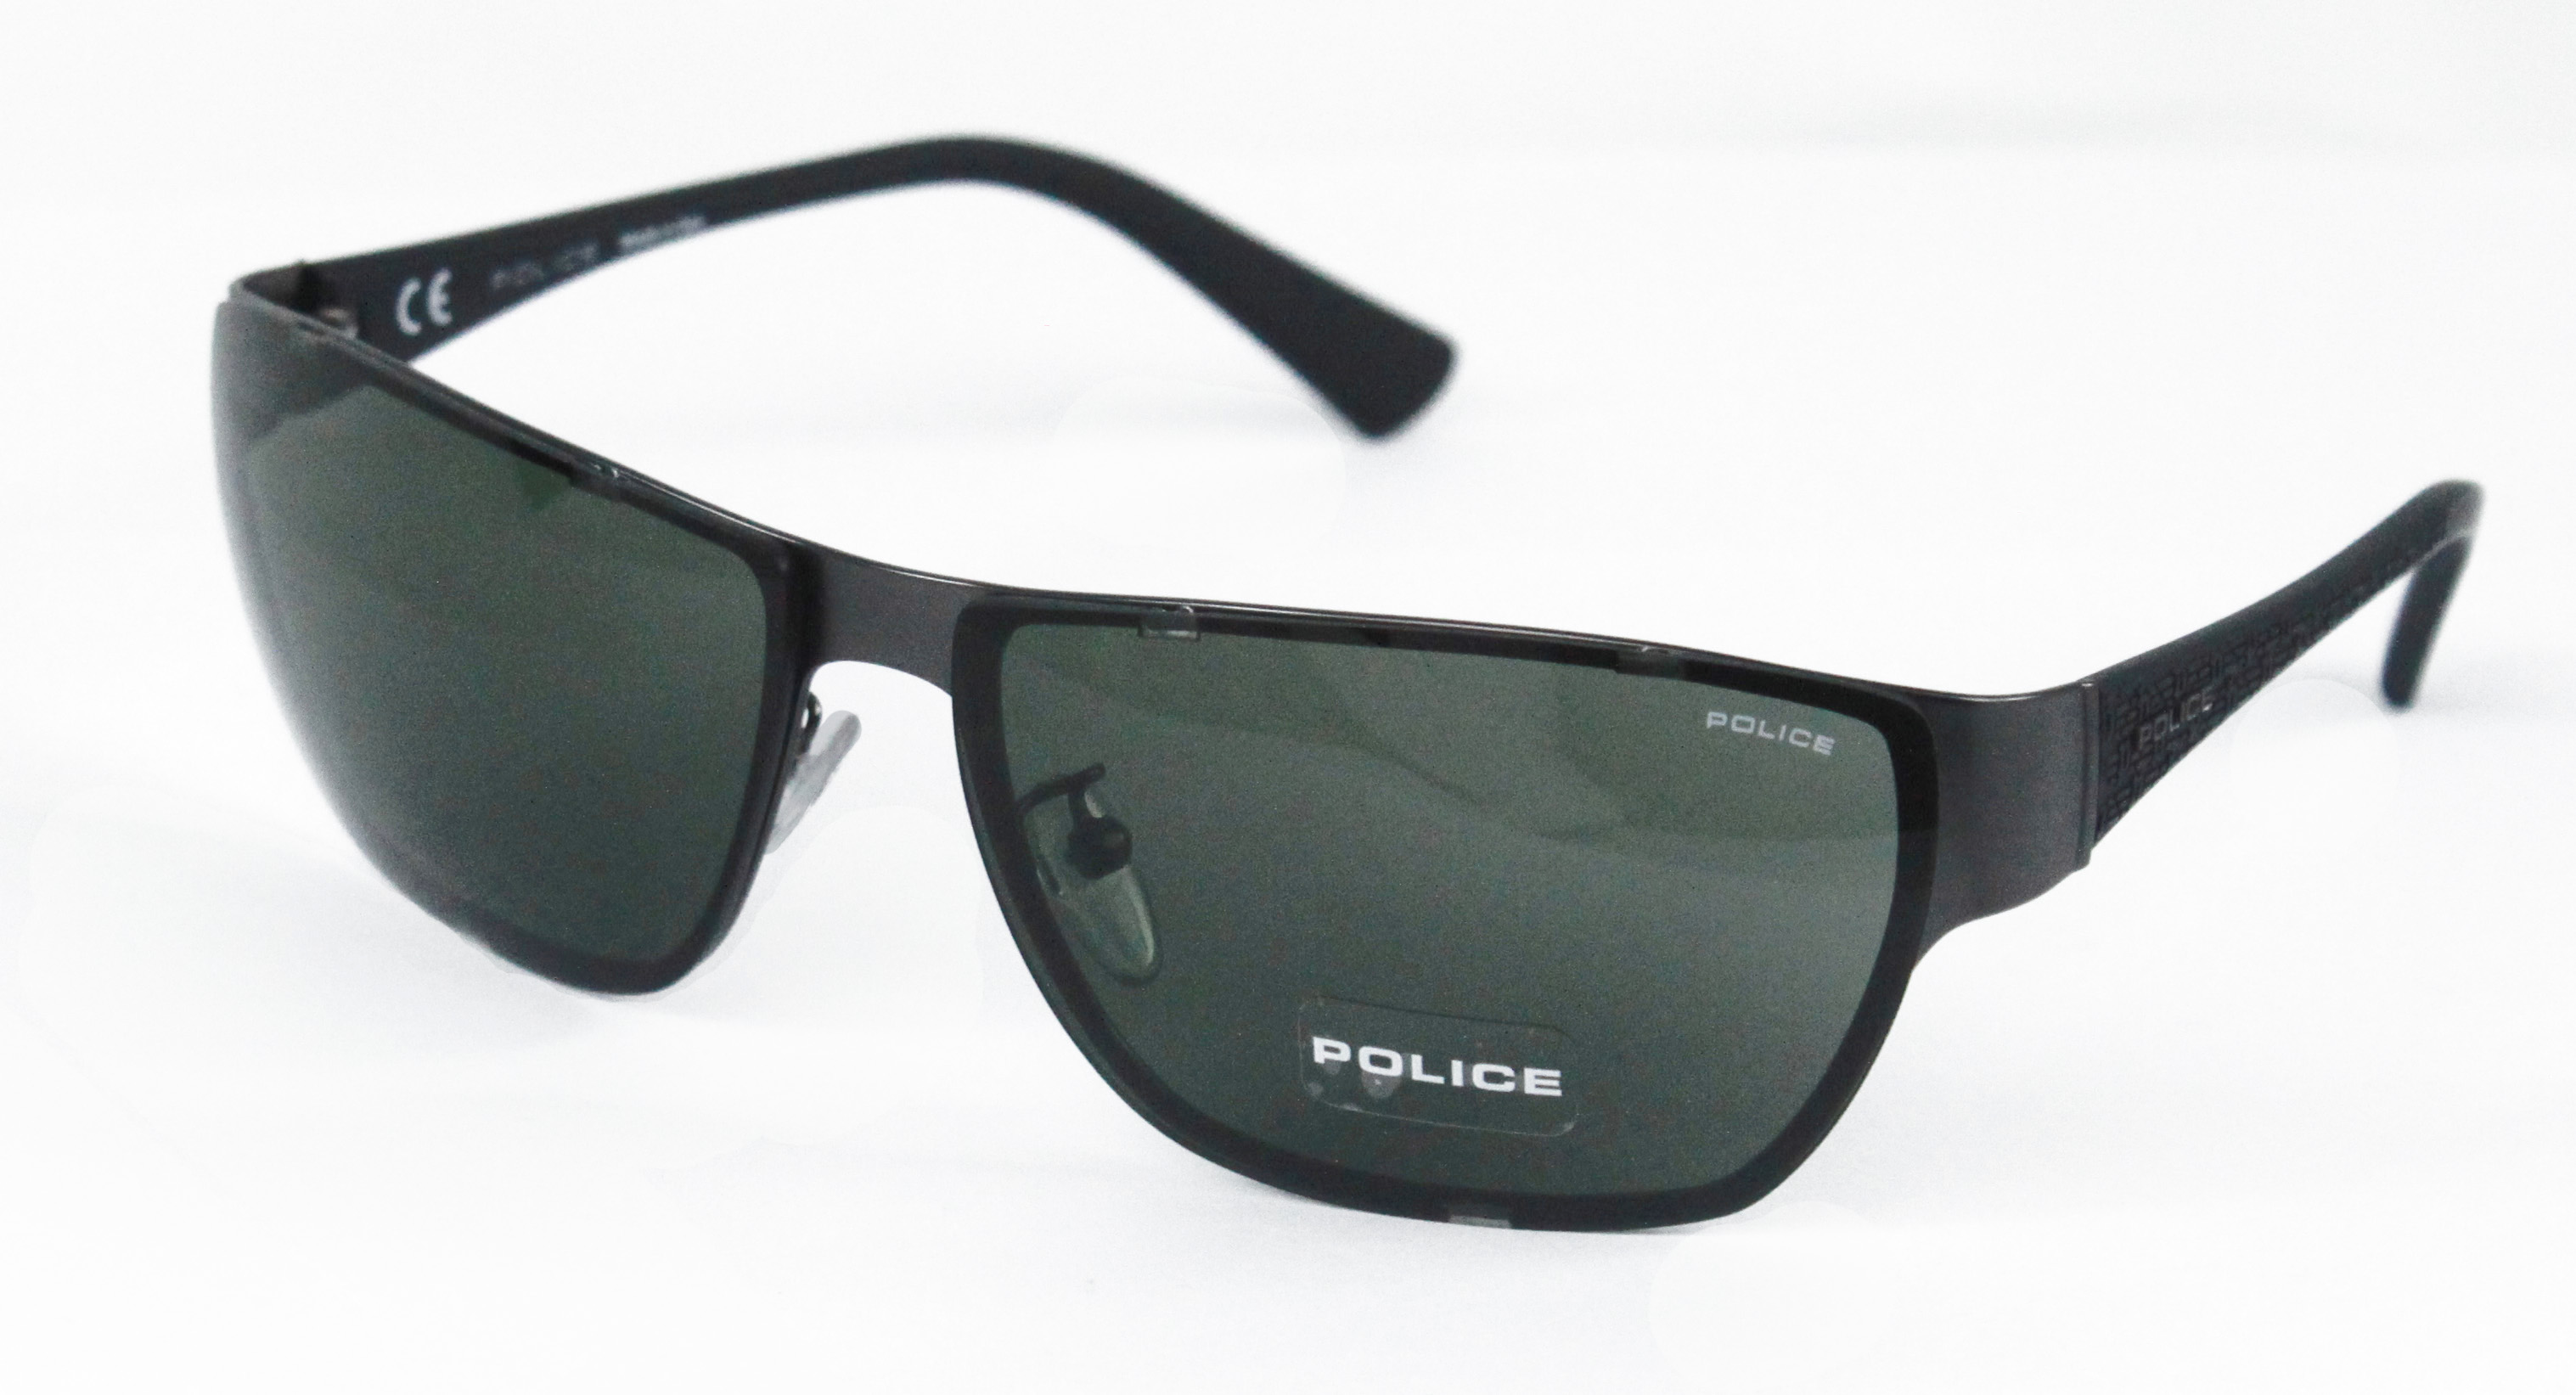 Details about Police SPL145 0627 Sunglasses ad307e241f